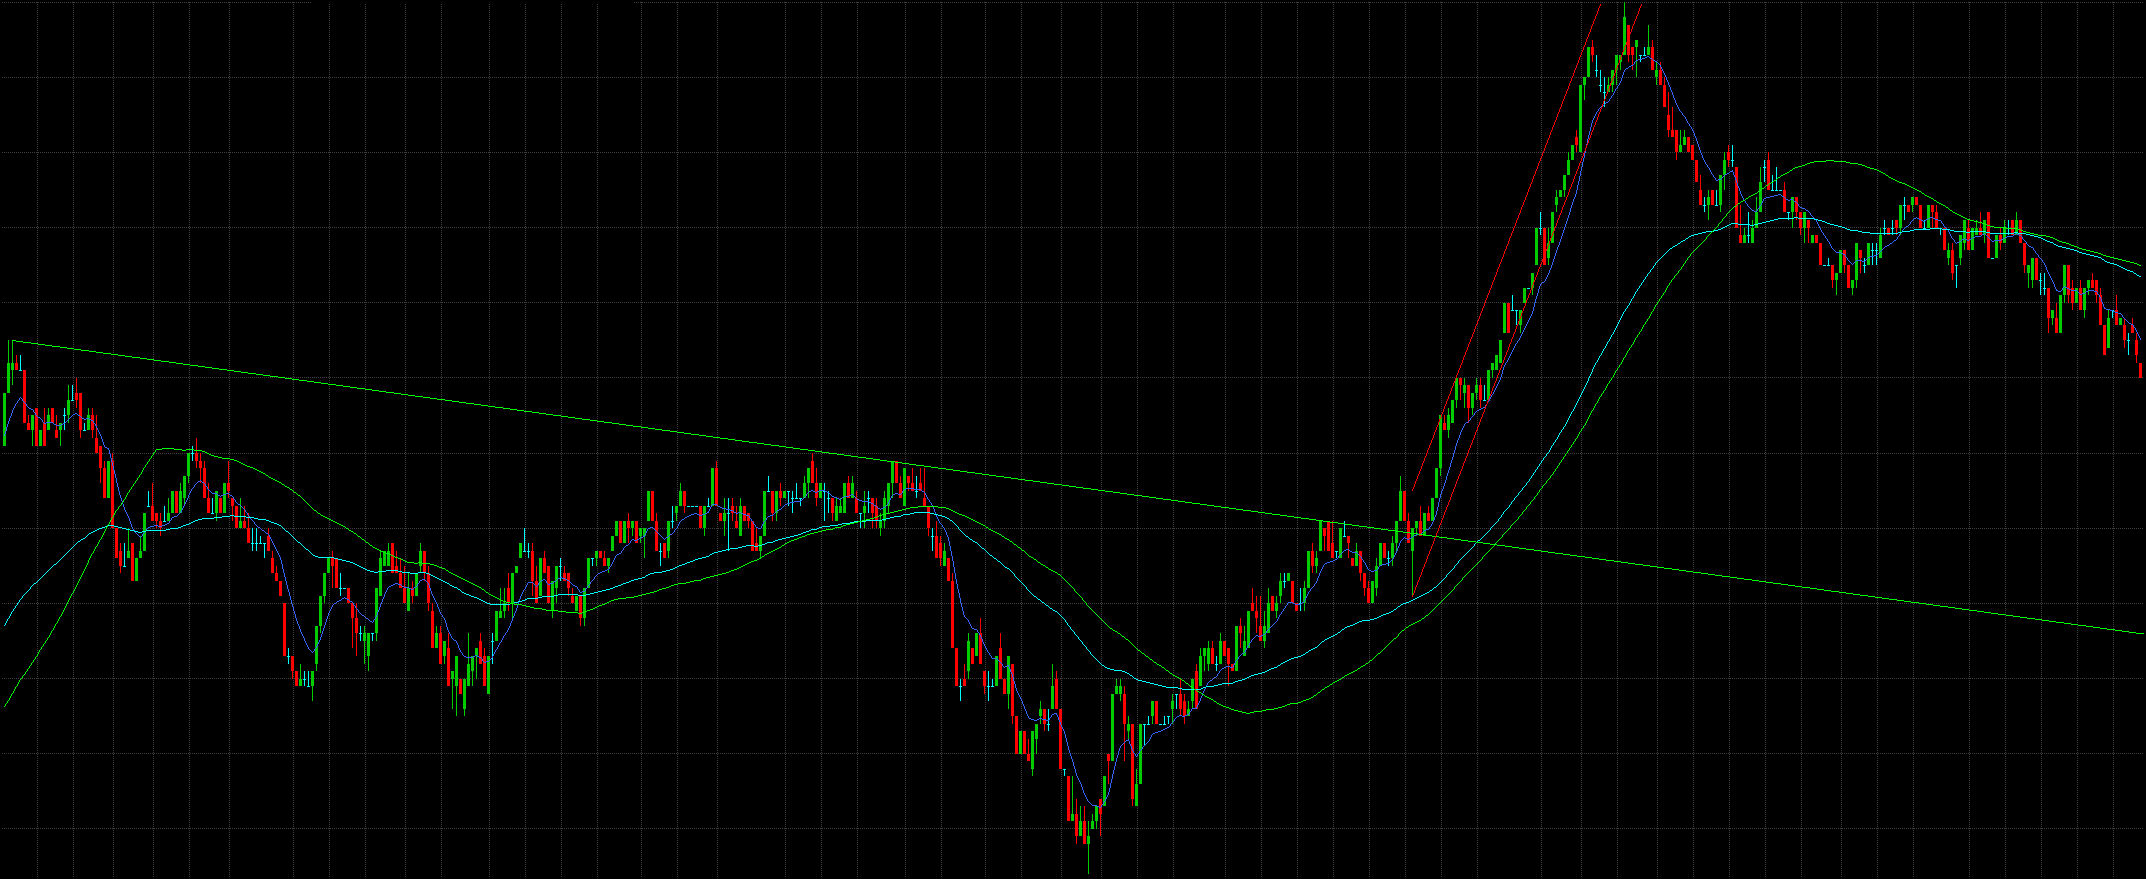 Downtrend Breakout